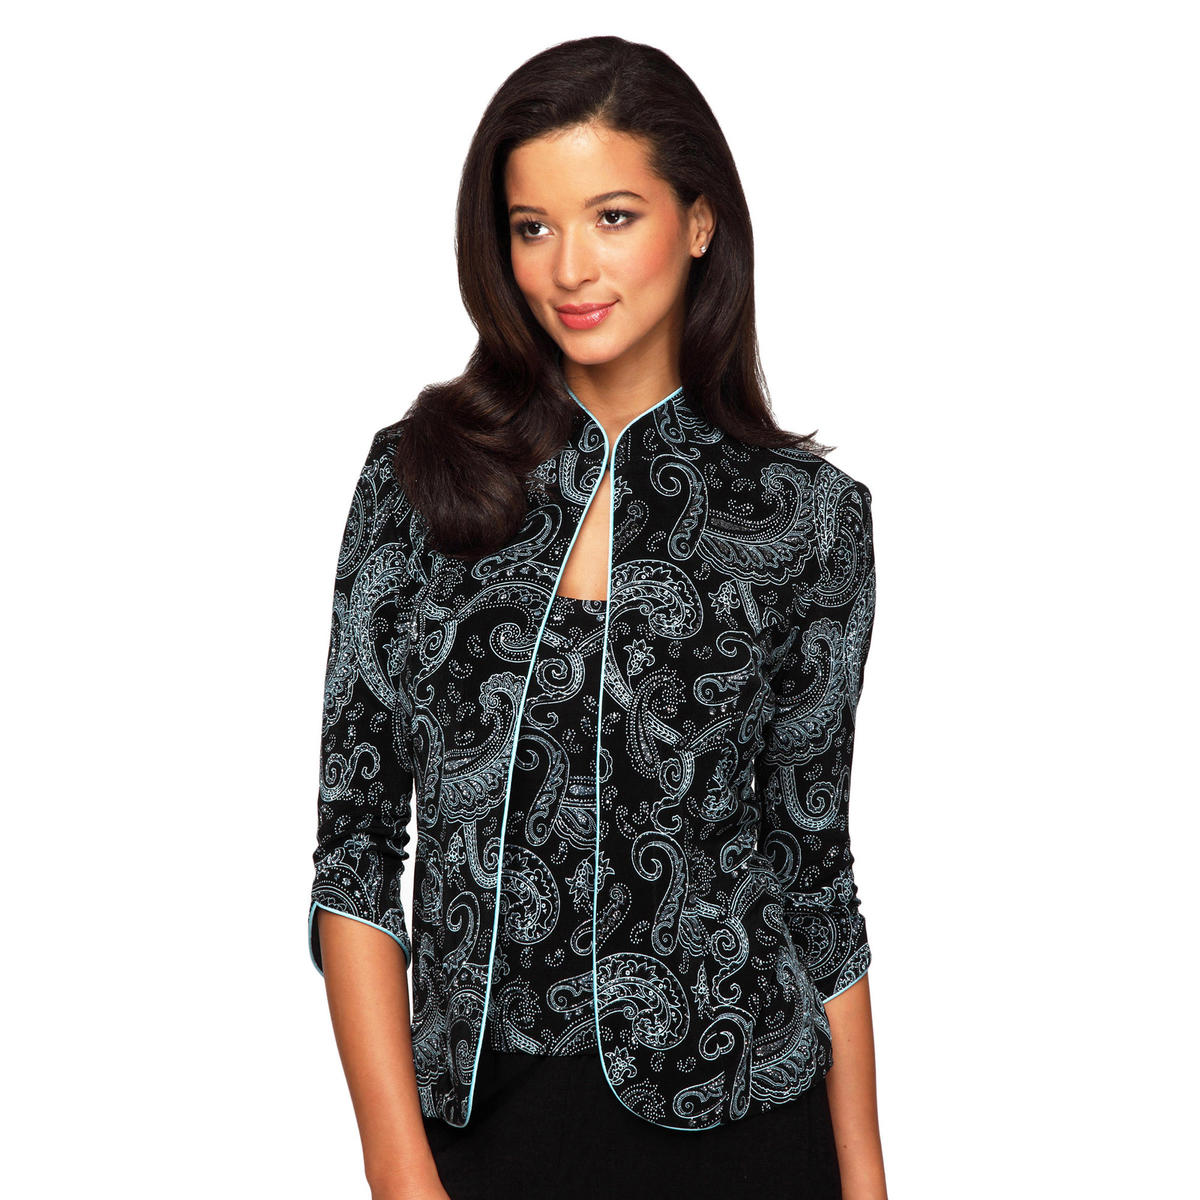 ALEX APPAREL GROUP INC - Paisley Print Jacket & Camisole